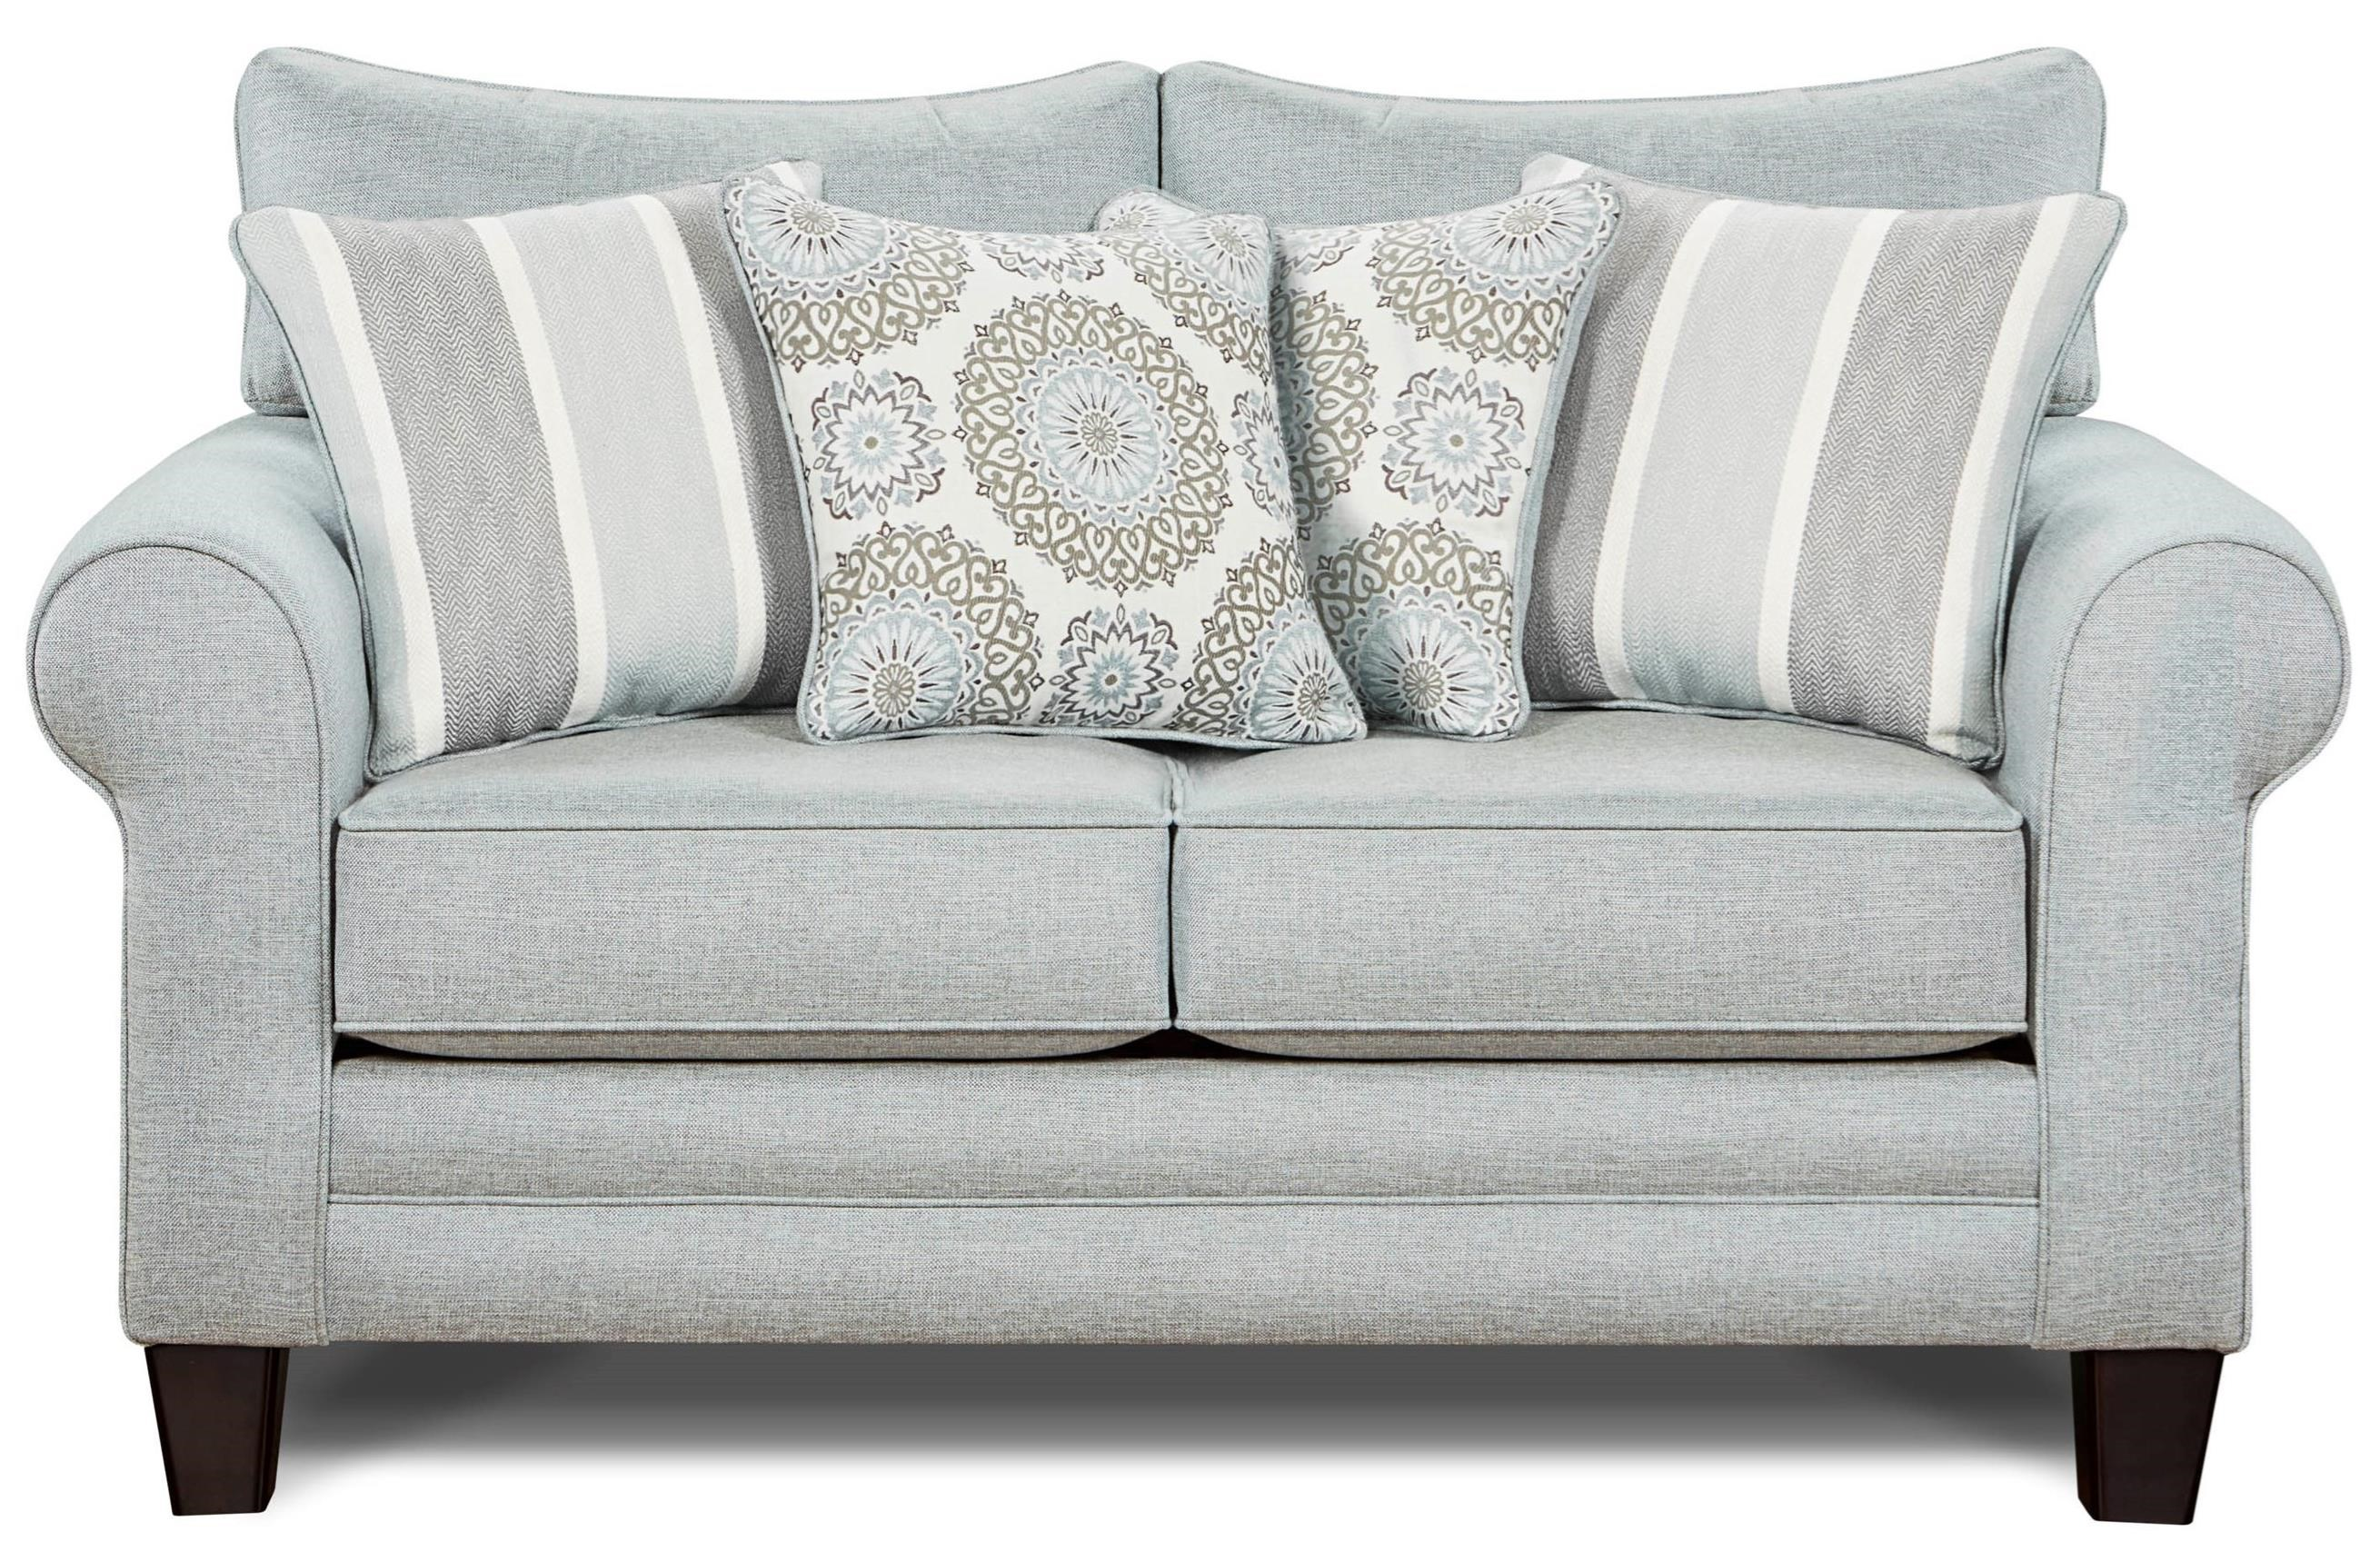 1140 Loveseat by Fusion Furniture at Wilcox Furniture